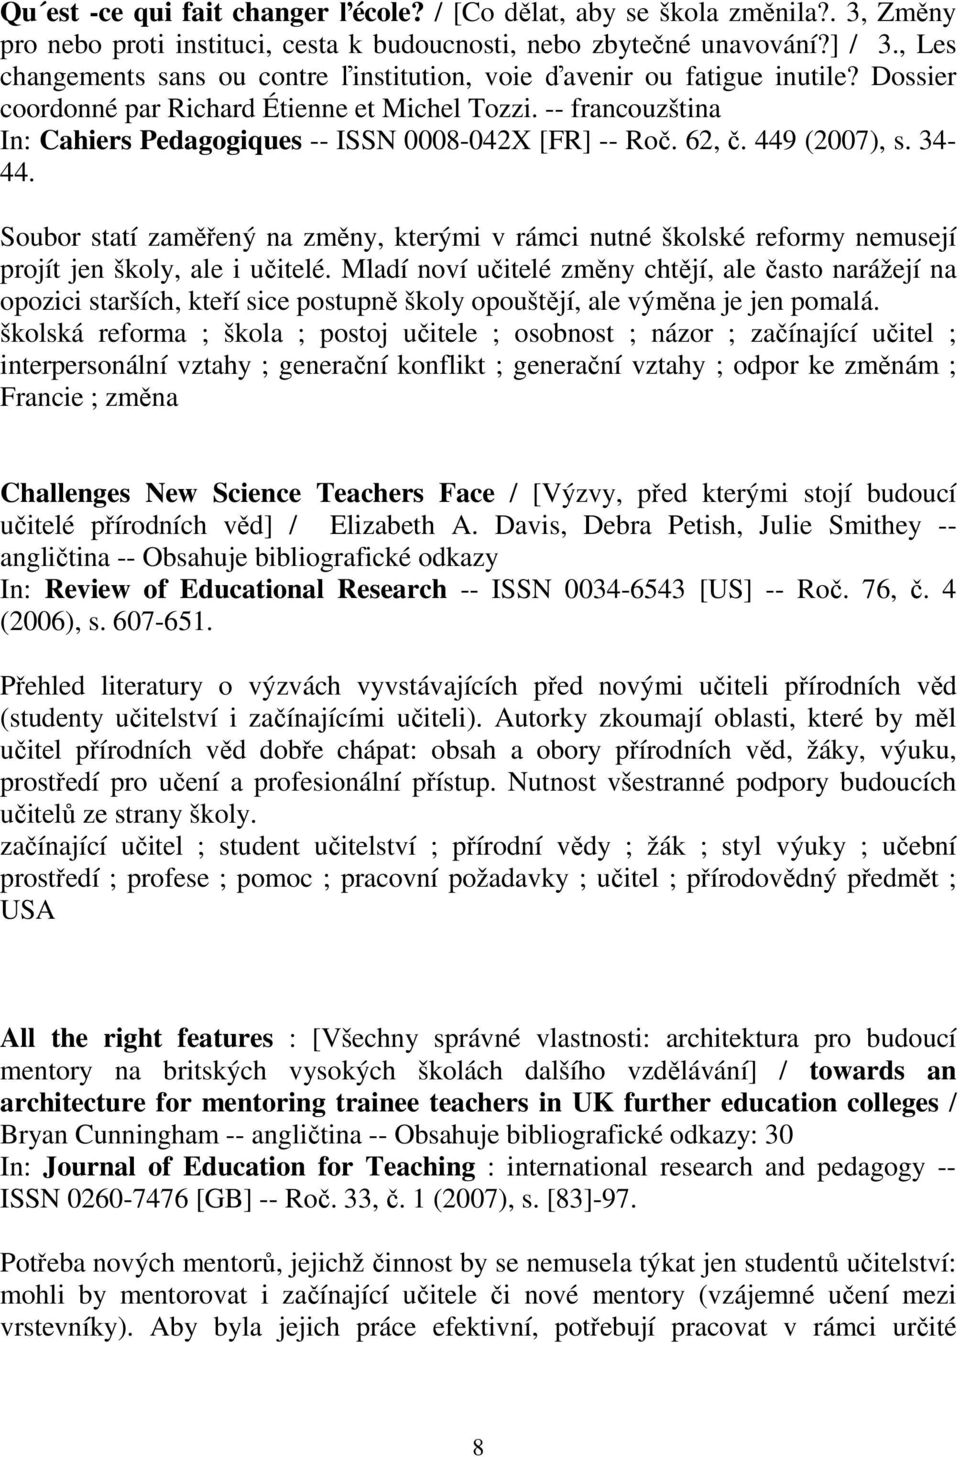 -- francouzština In: Cahiers Pedagogiques -- ISSN 0008-042X [FR] -- Roč. 62, č. 449 (2007), s. 34-44.